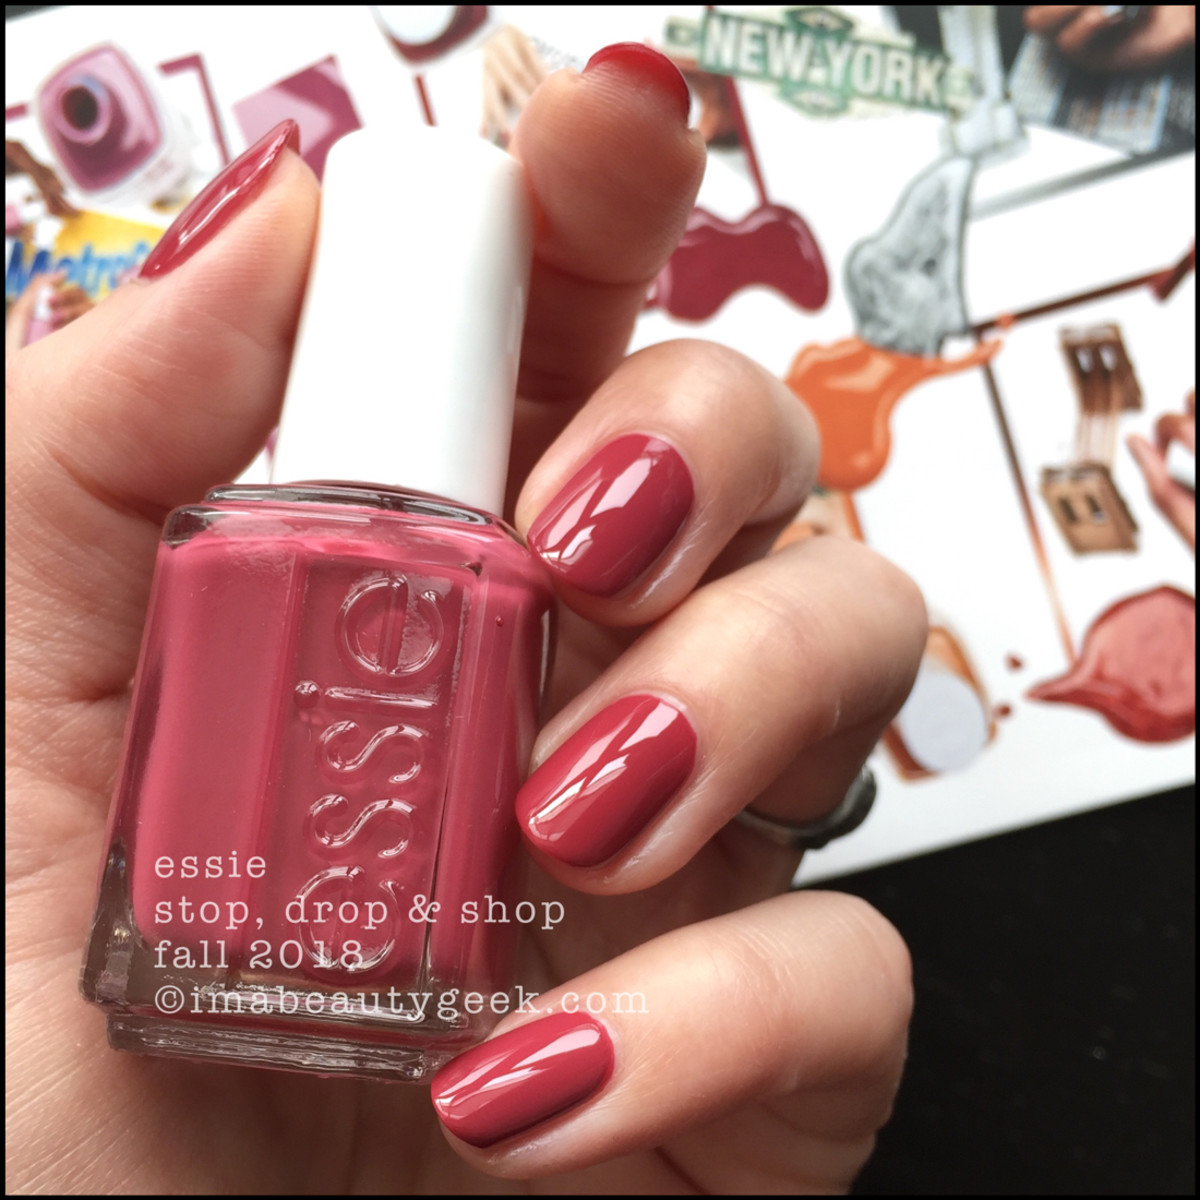 Essie Stop, Drop & Shop _ Essie Fall 2018 Collection